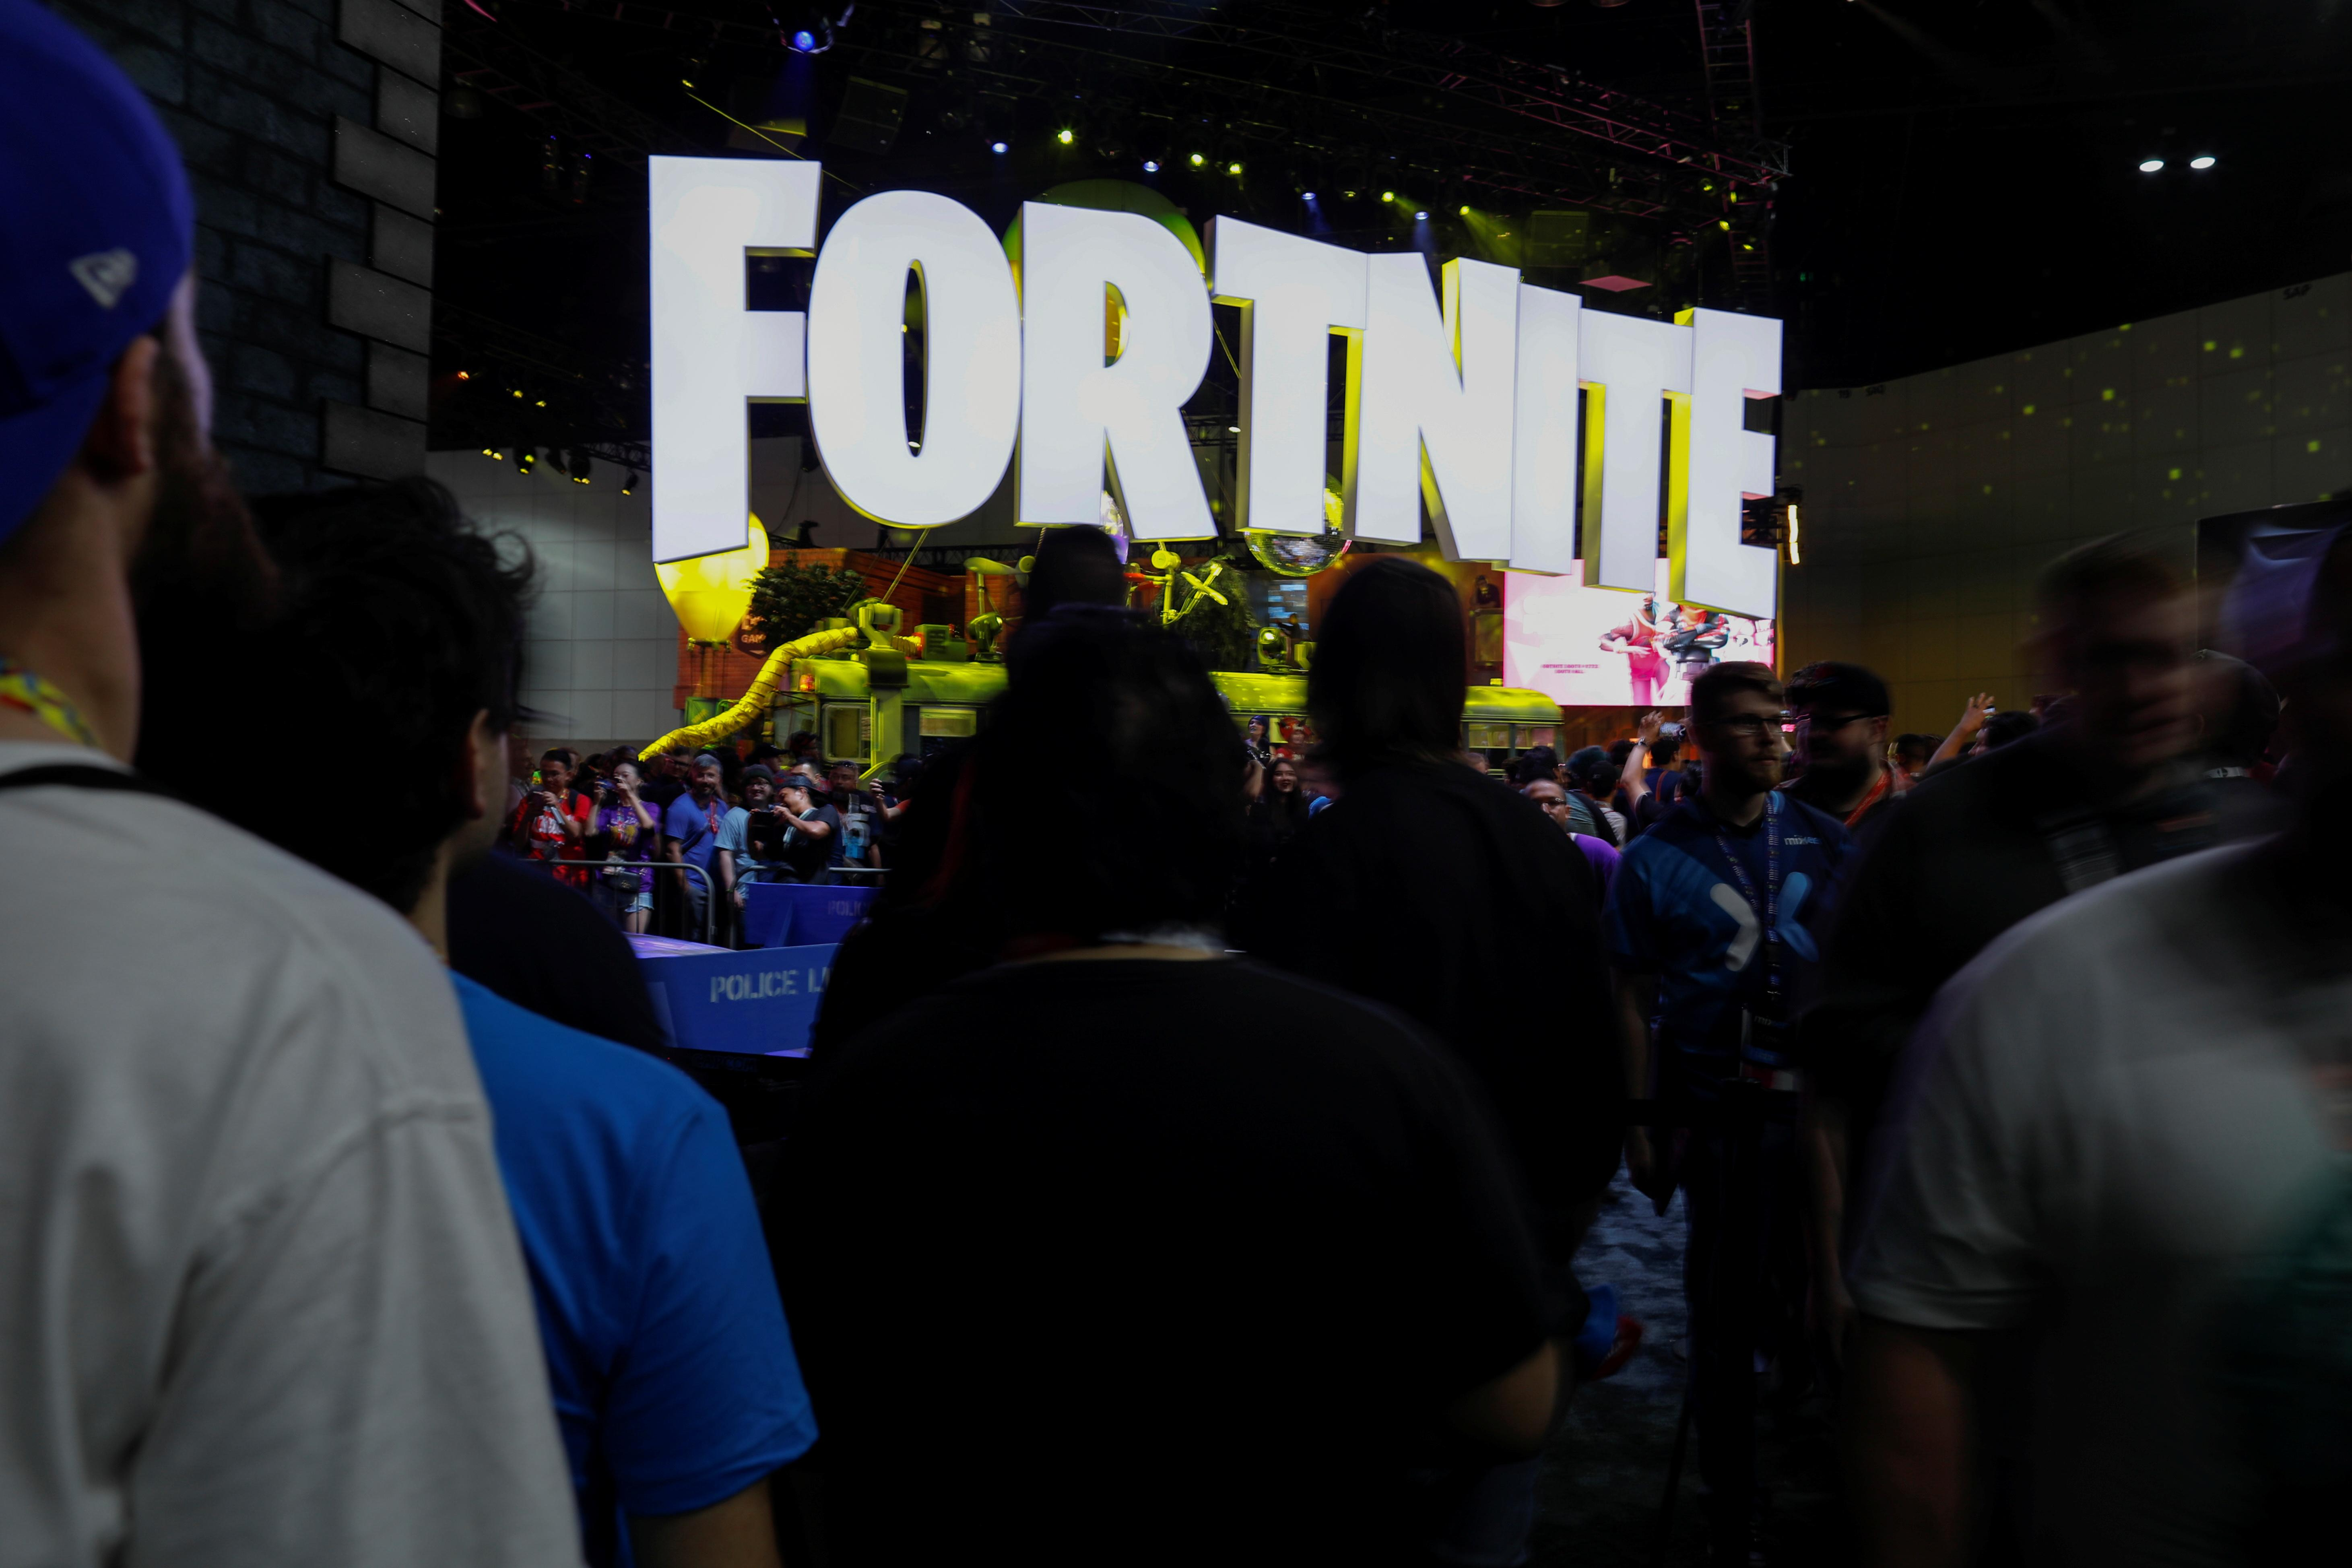 Competitive Fortnite player breaks down growth in esports